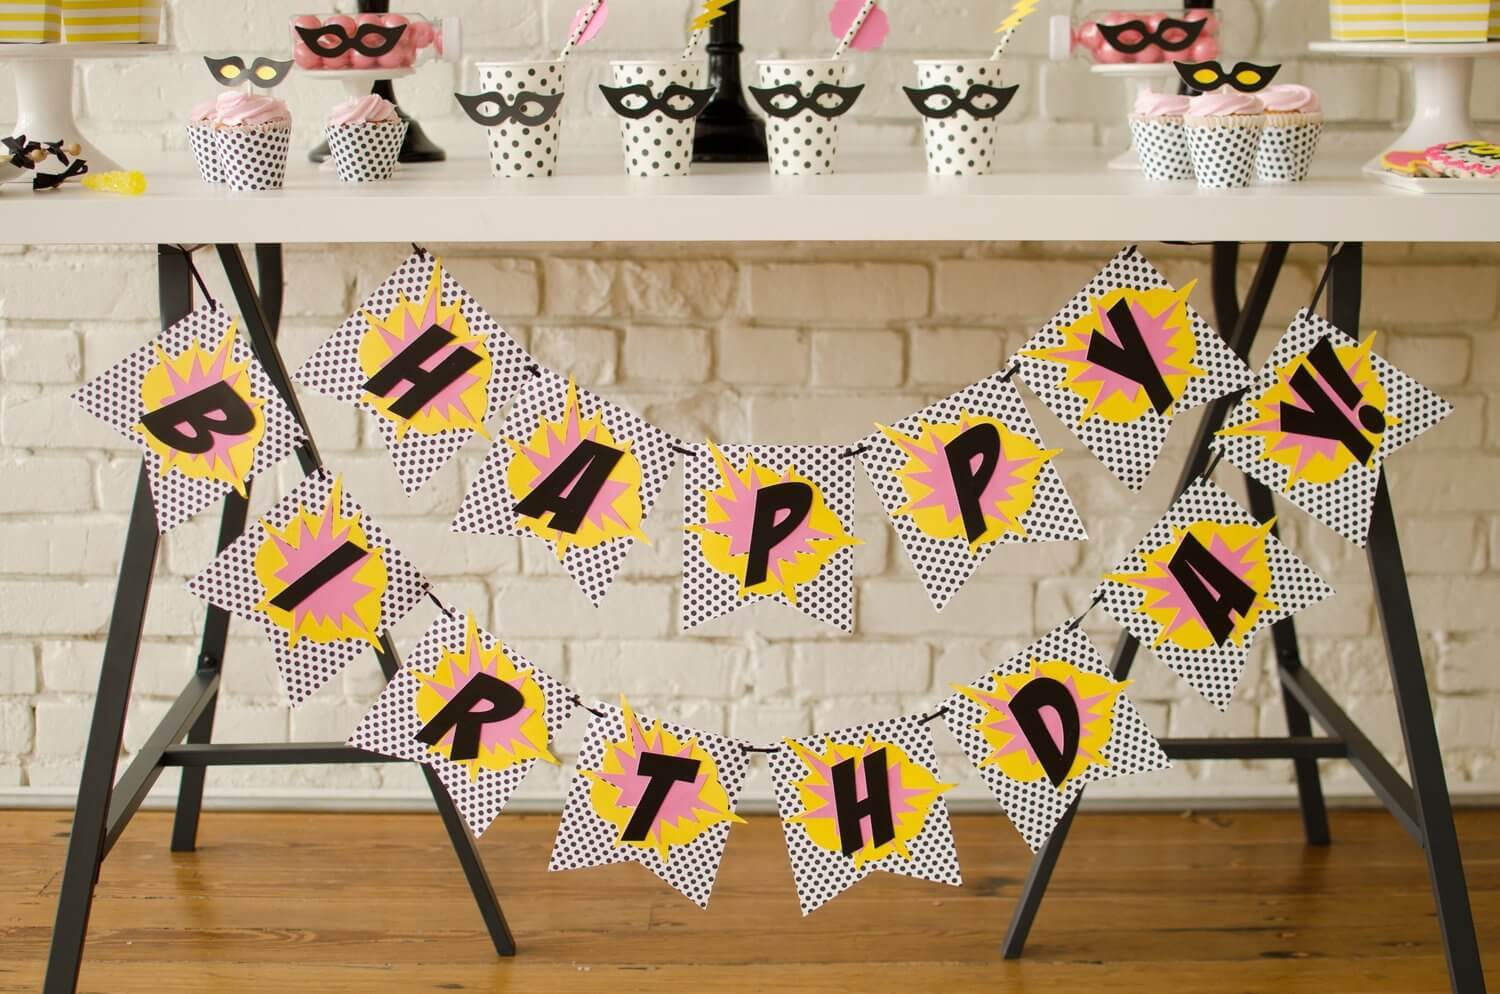 Dress up the front of your dessert table with a colorful Happy Birthday banner that matches the party colors - see more kids party ideas on Mint Event Design www.minteventdesign.com